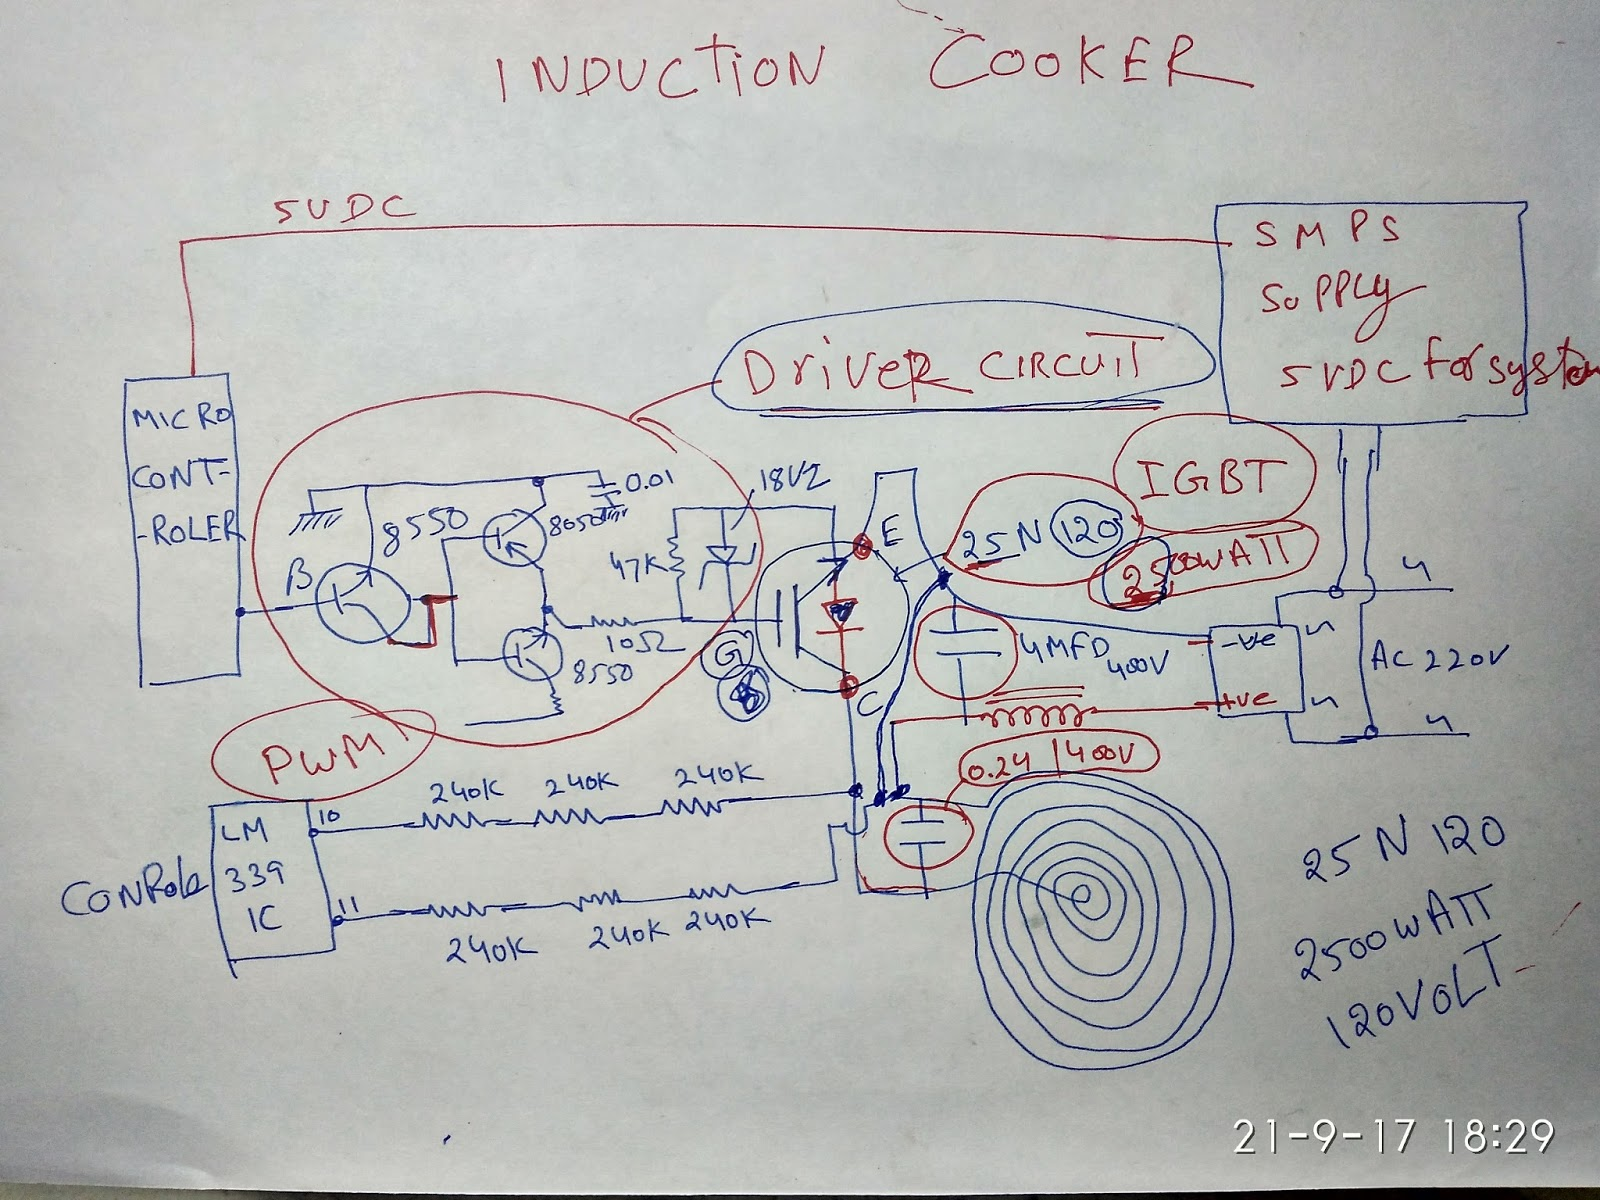 Induction Heater Circuit Diagram Pdf Trusted Wiring Diagrams The Cooker 2mapaorg Prestige Diy Enthusiasts Thermal Welding Coil